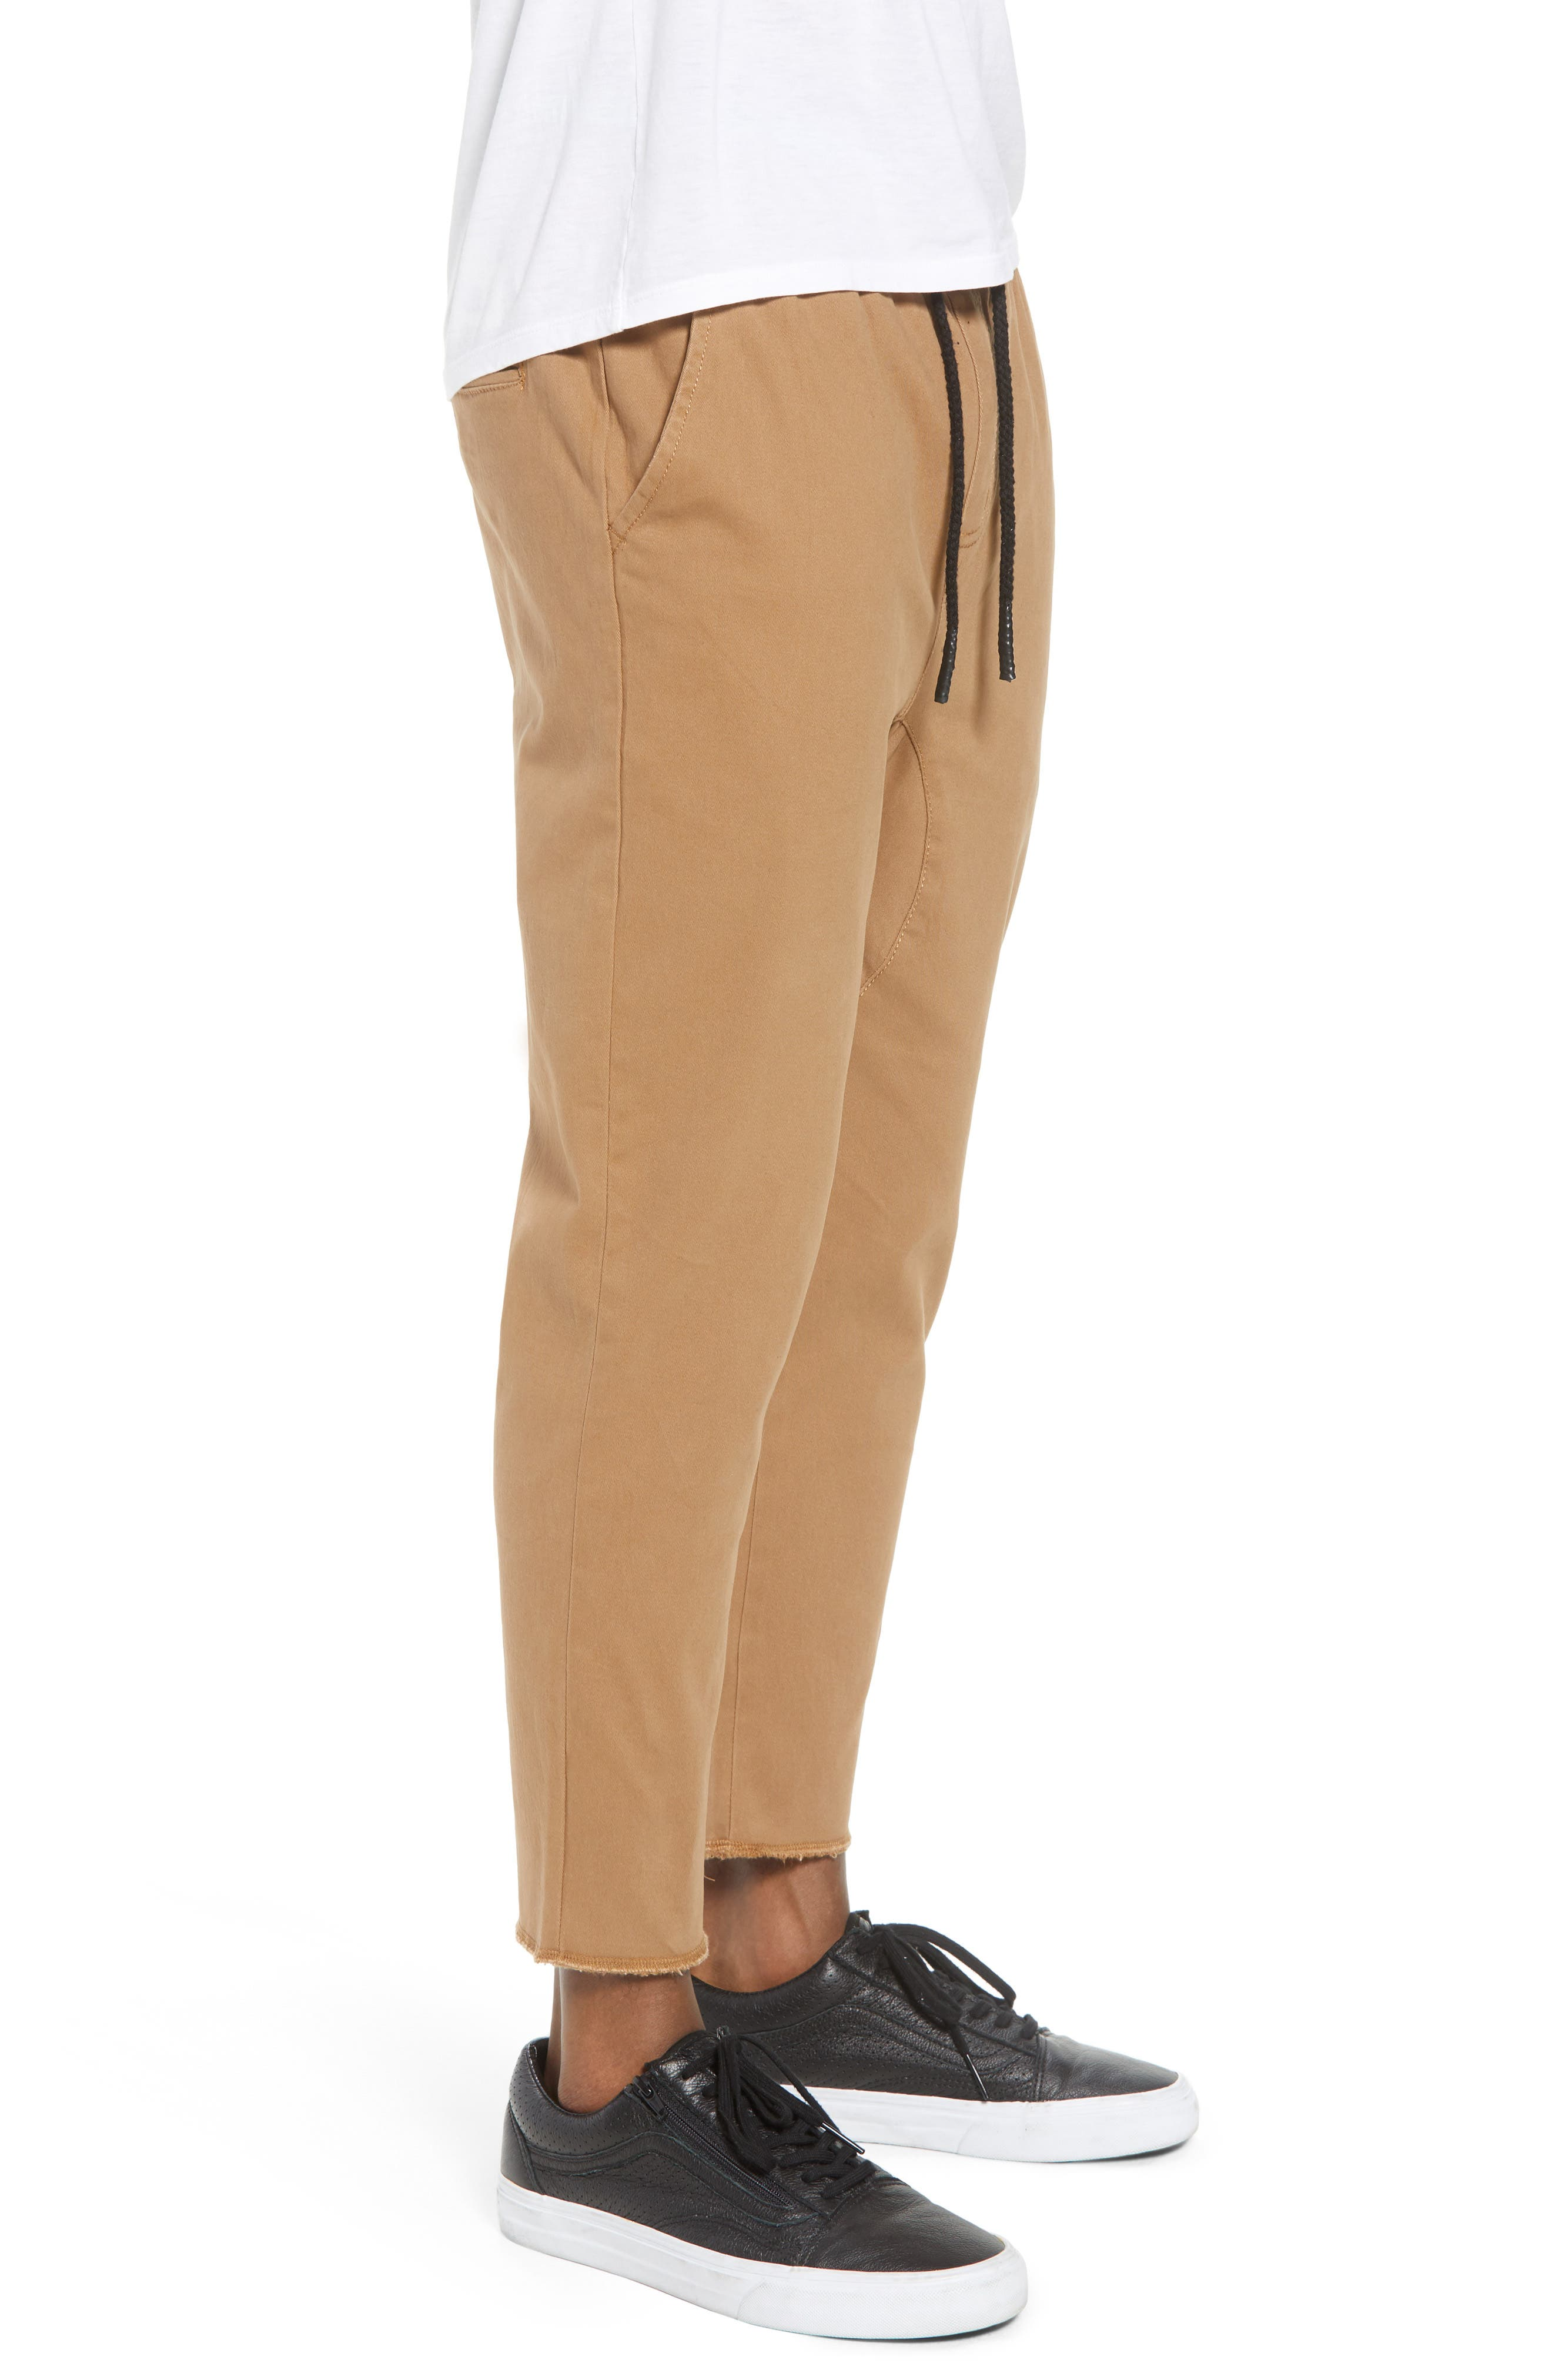 Vacation Slim Fit Crop Pants,                             Alternate thumbnail 3, color,                             Khaki